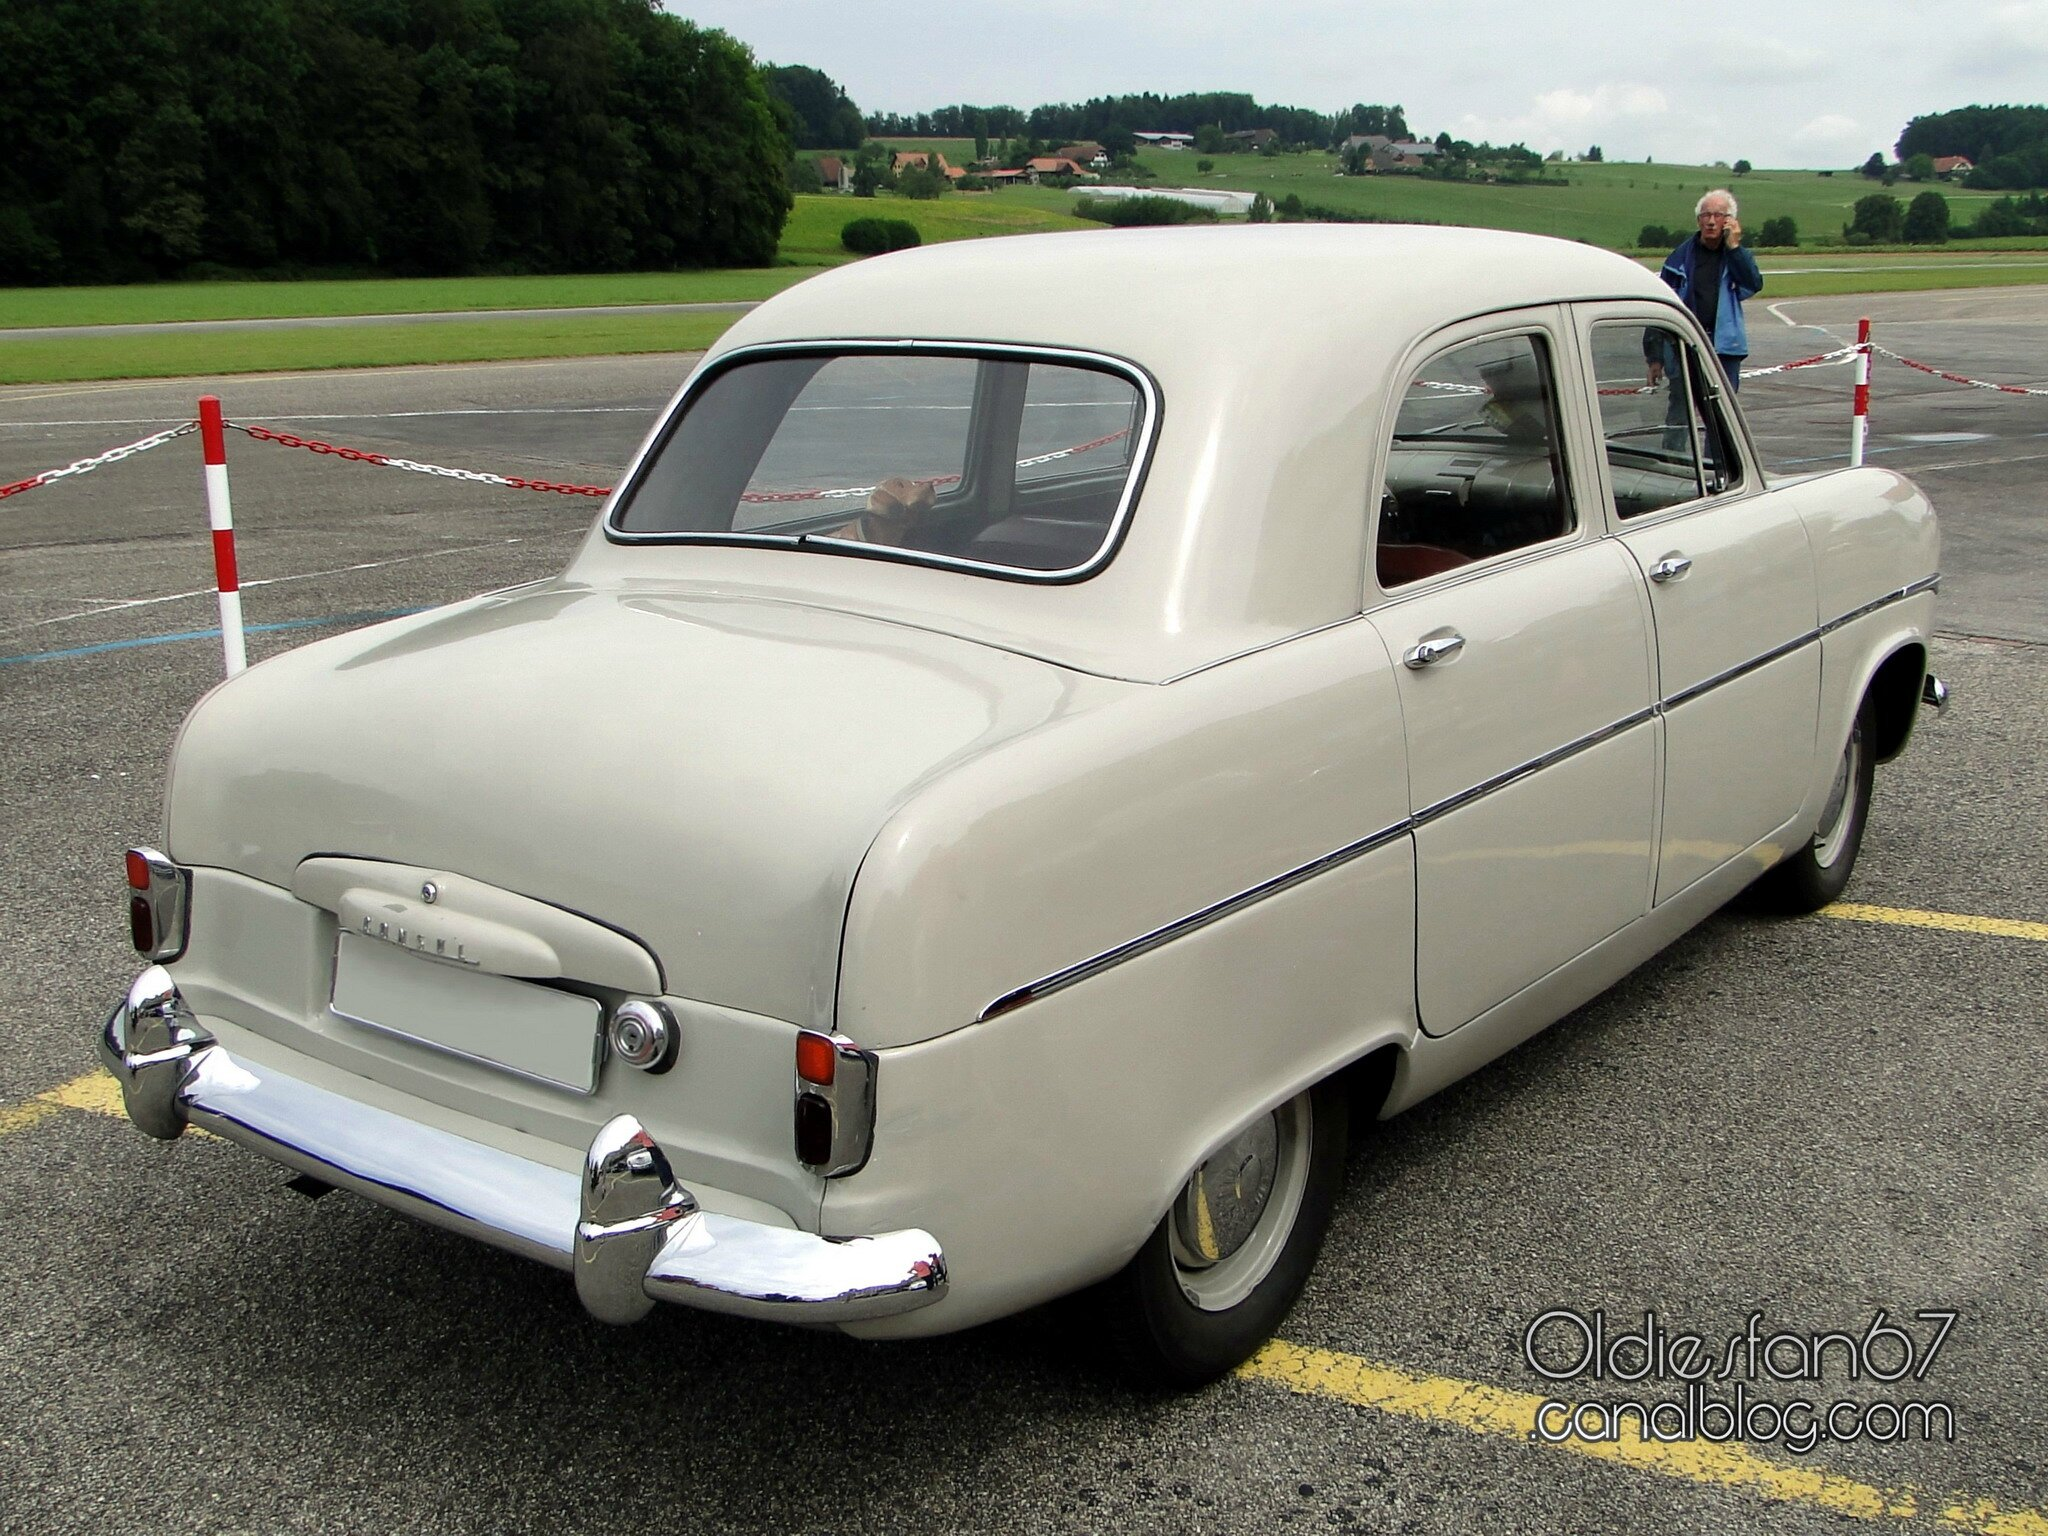 ford consul mk1 saloon 1951 1956 oldiesfan67 mon blog auto. Black Bedroom Furniture Sets. Home Design Ideas